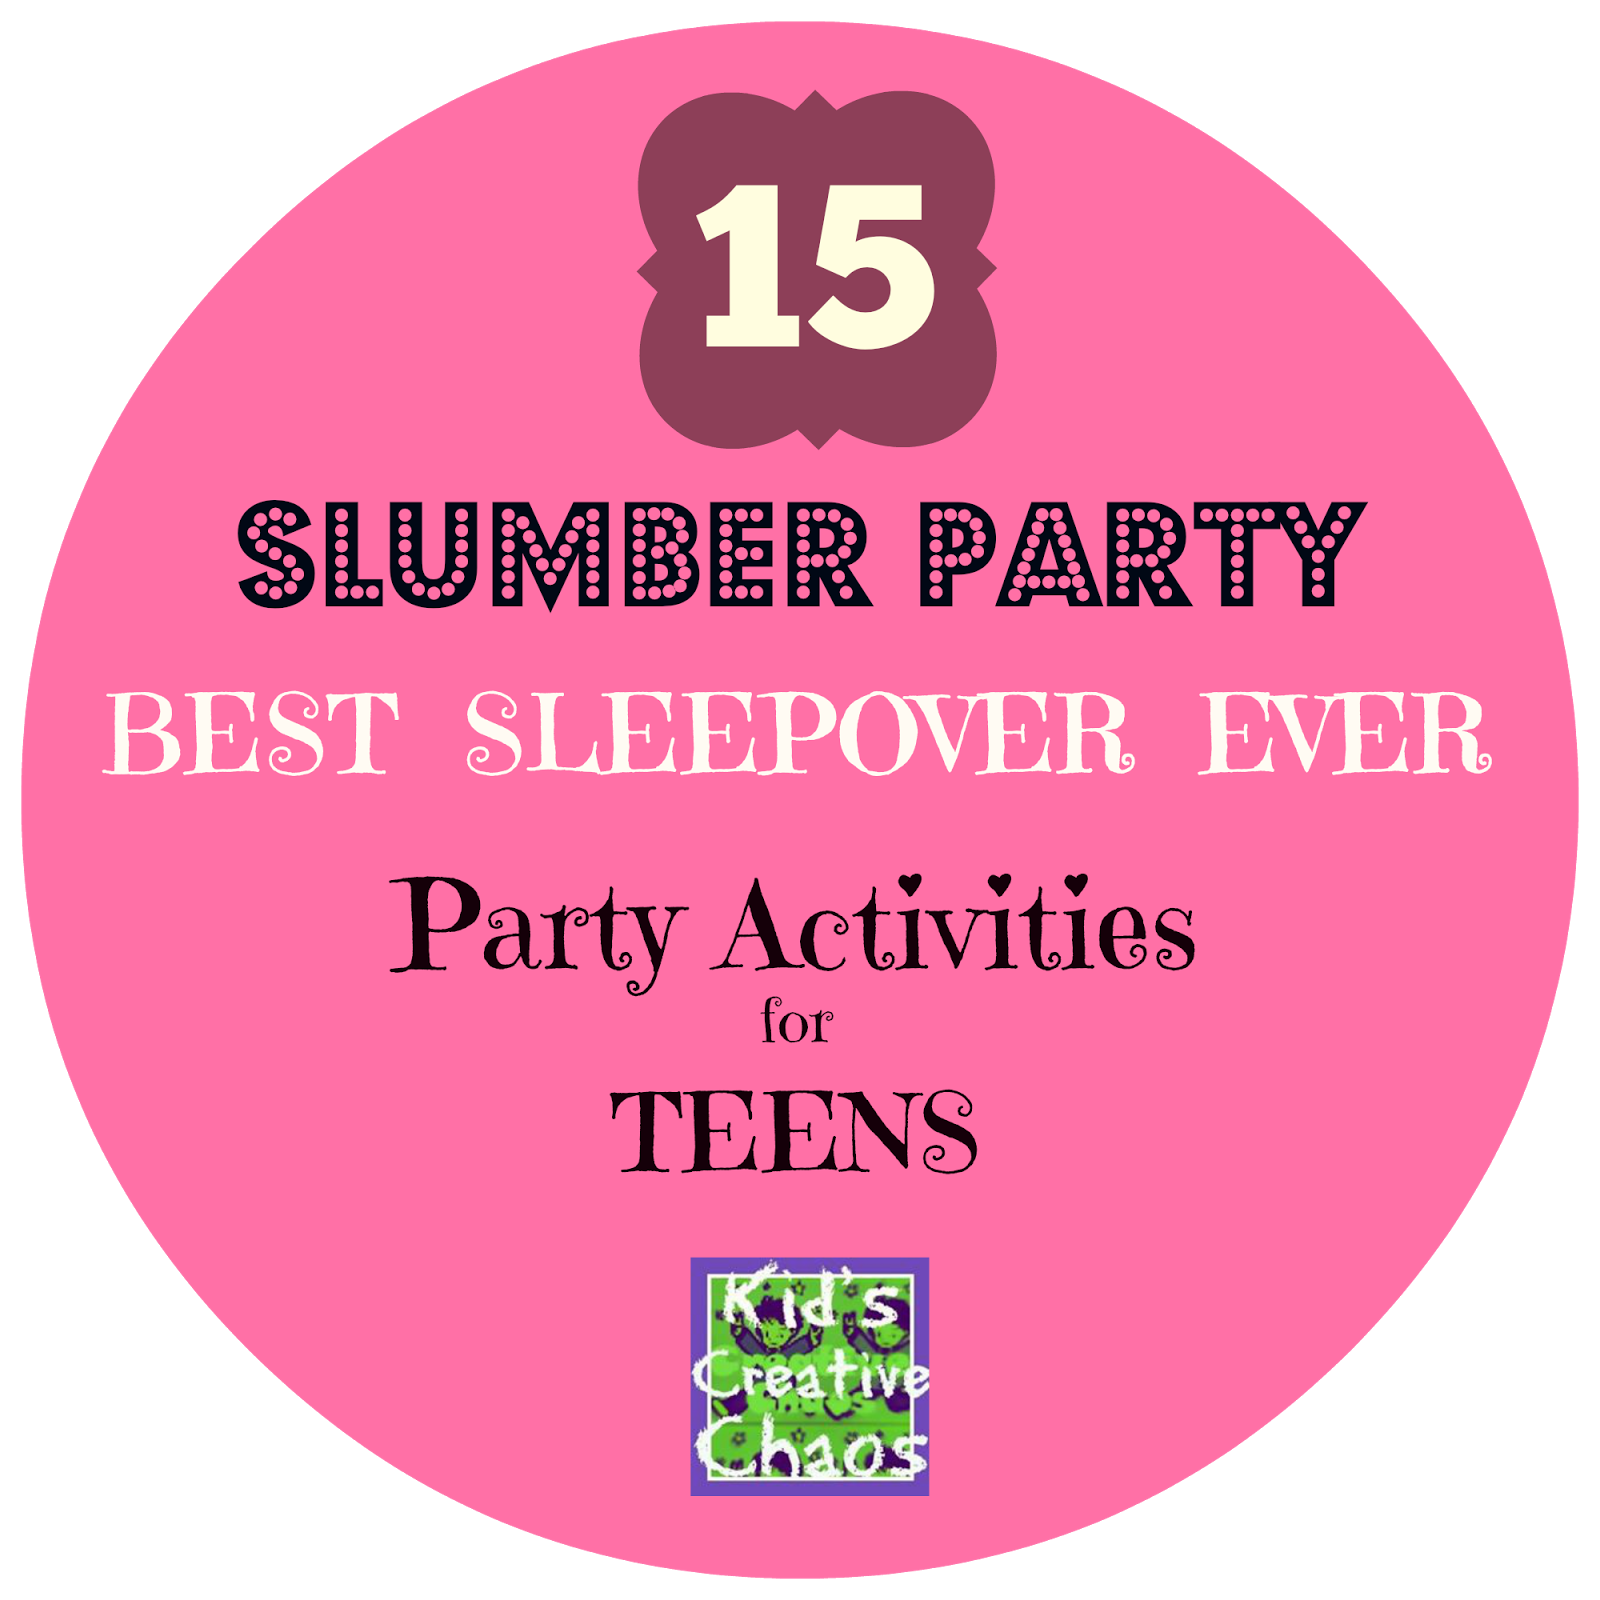 Kids Creative Chaos: 15 Slumber Party Games And Activities